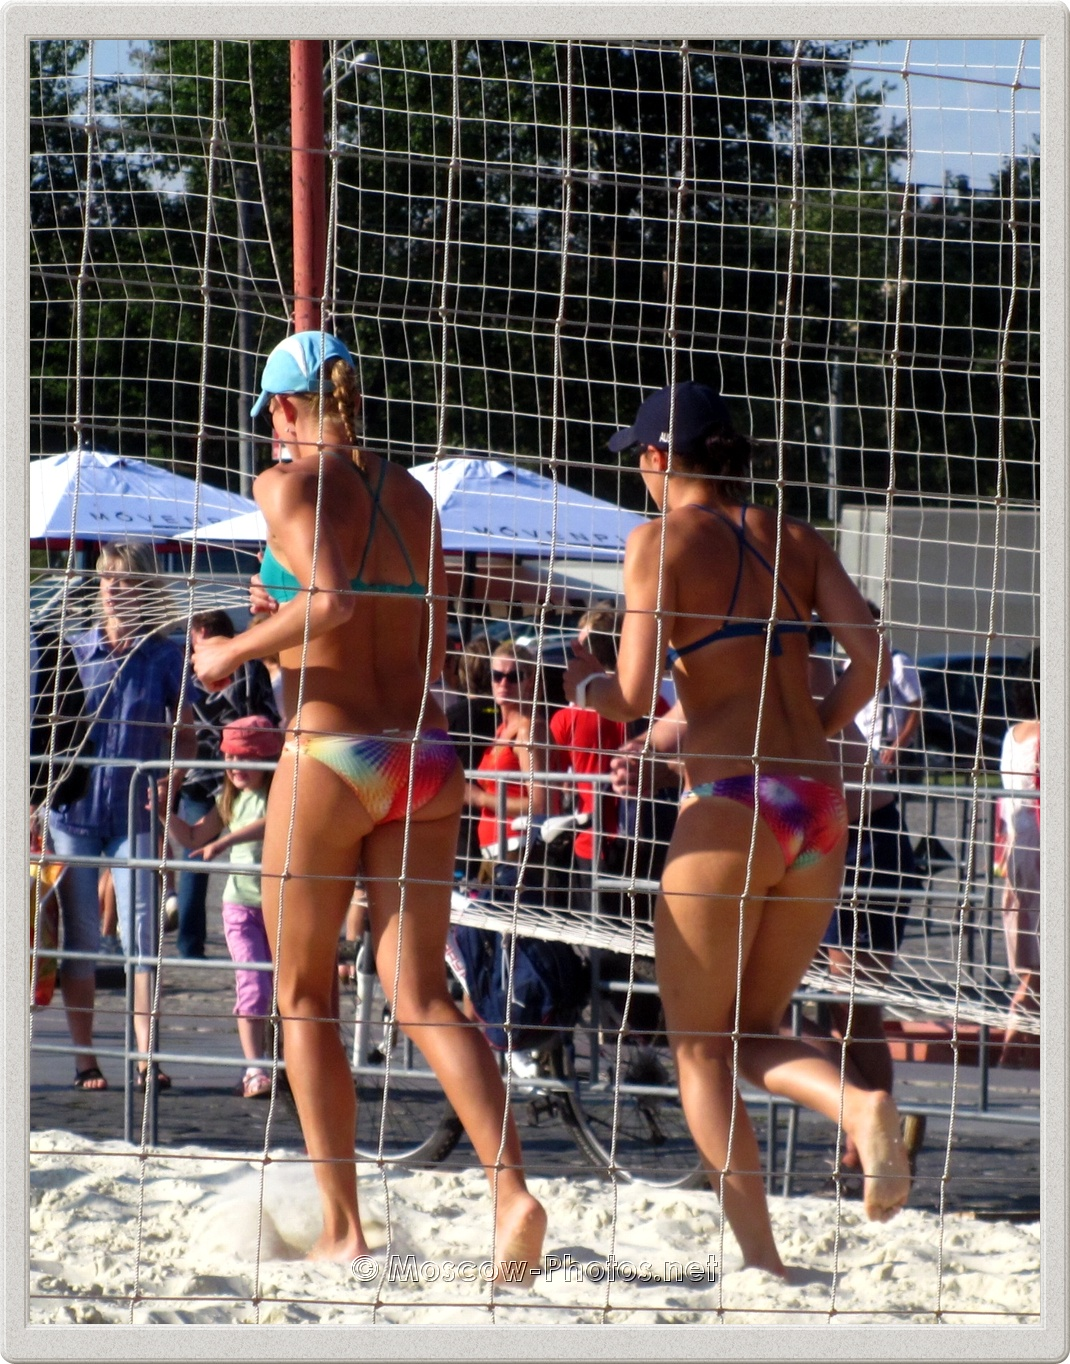 Beach Volleyball Girls at Practice Court